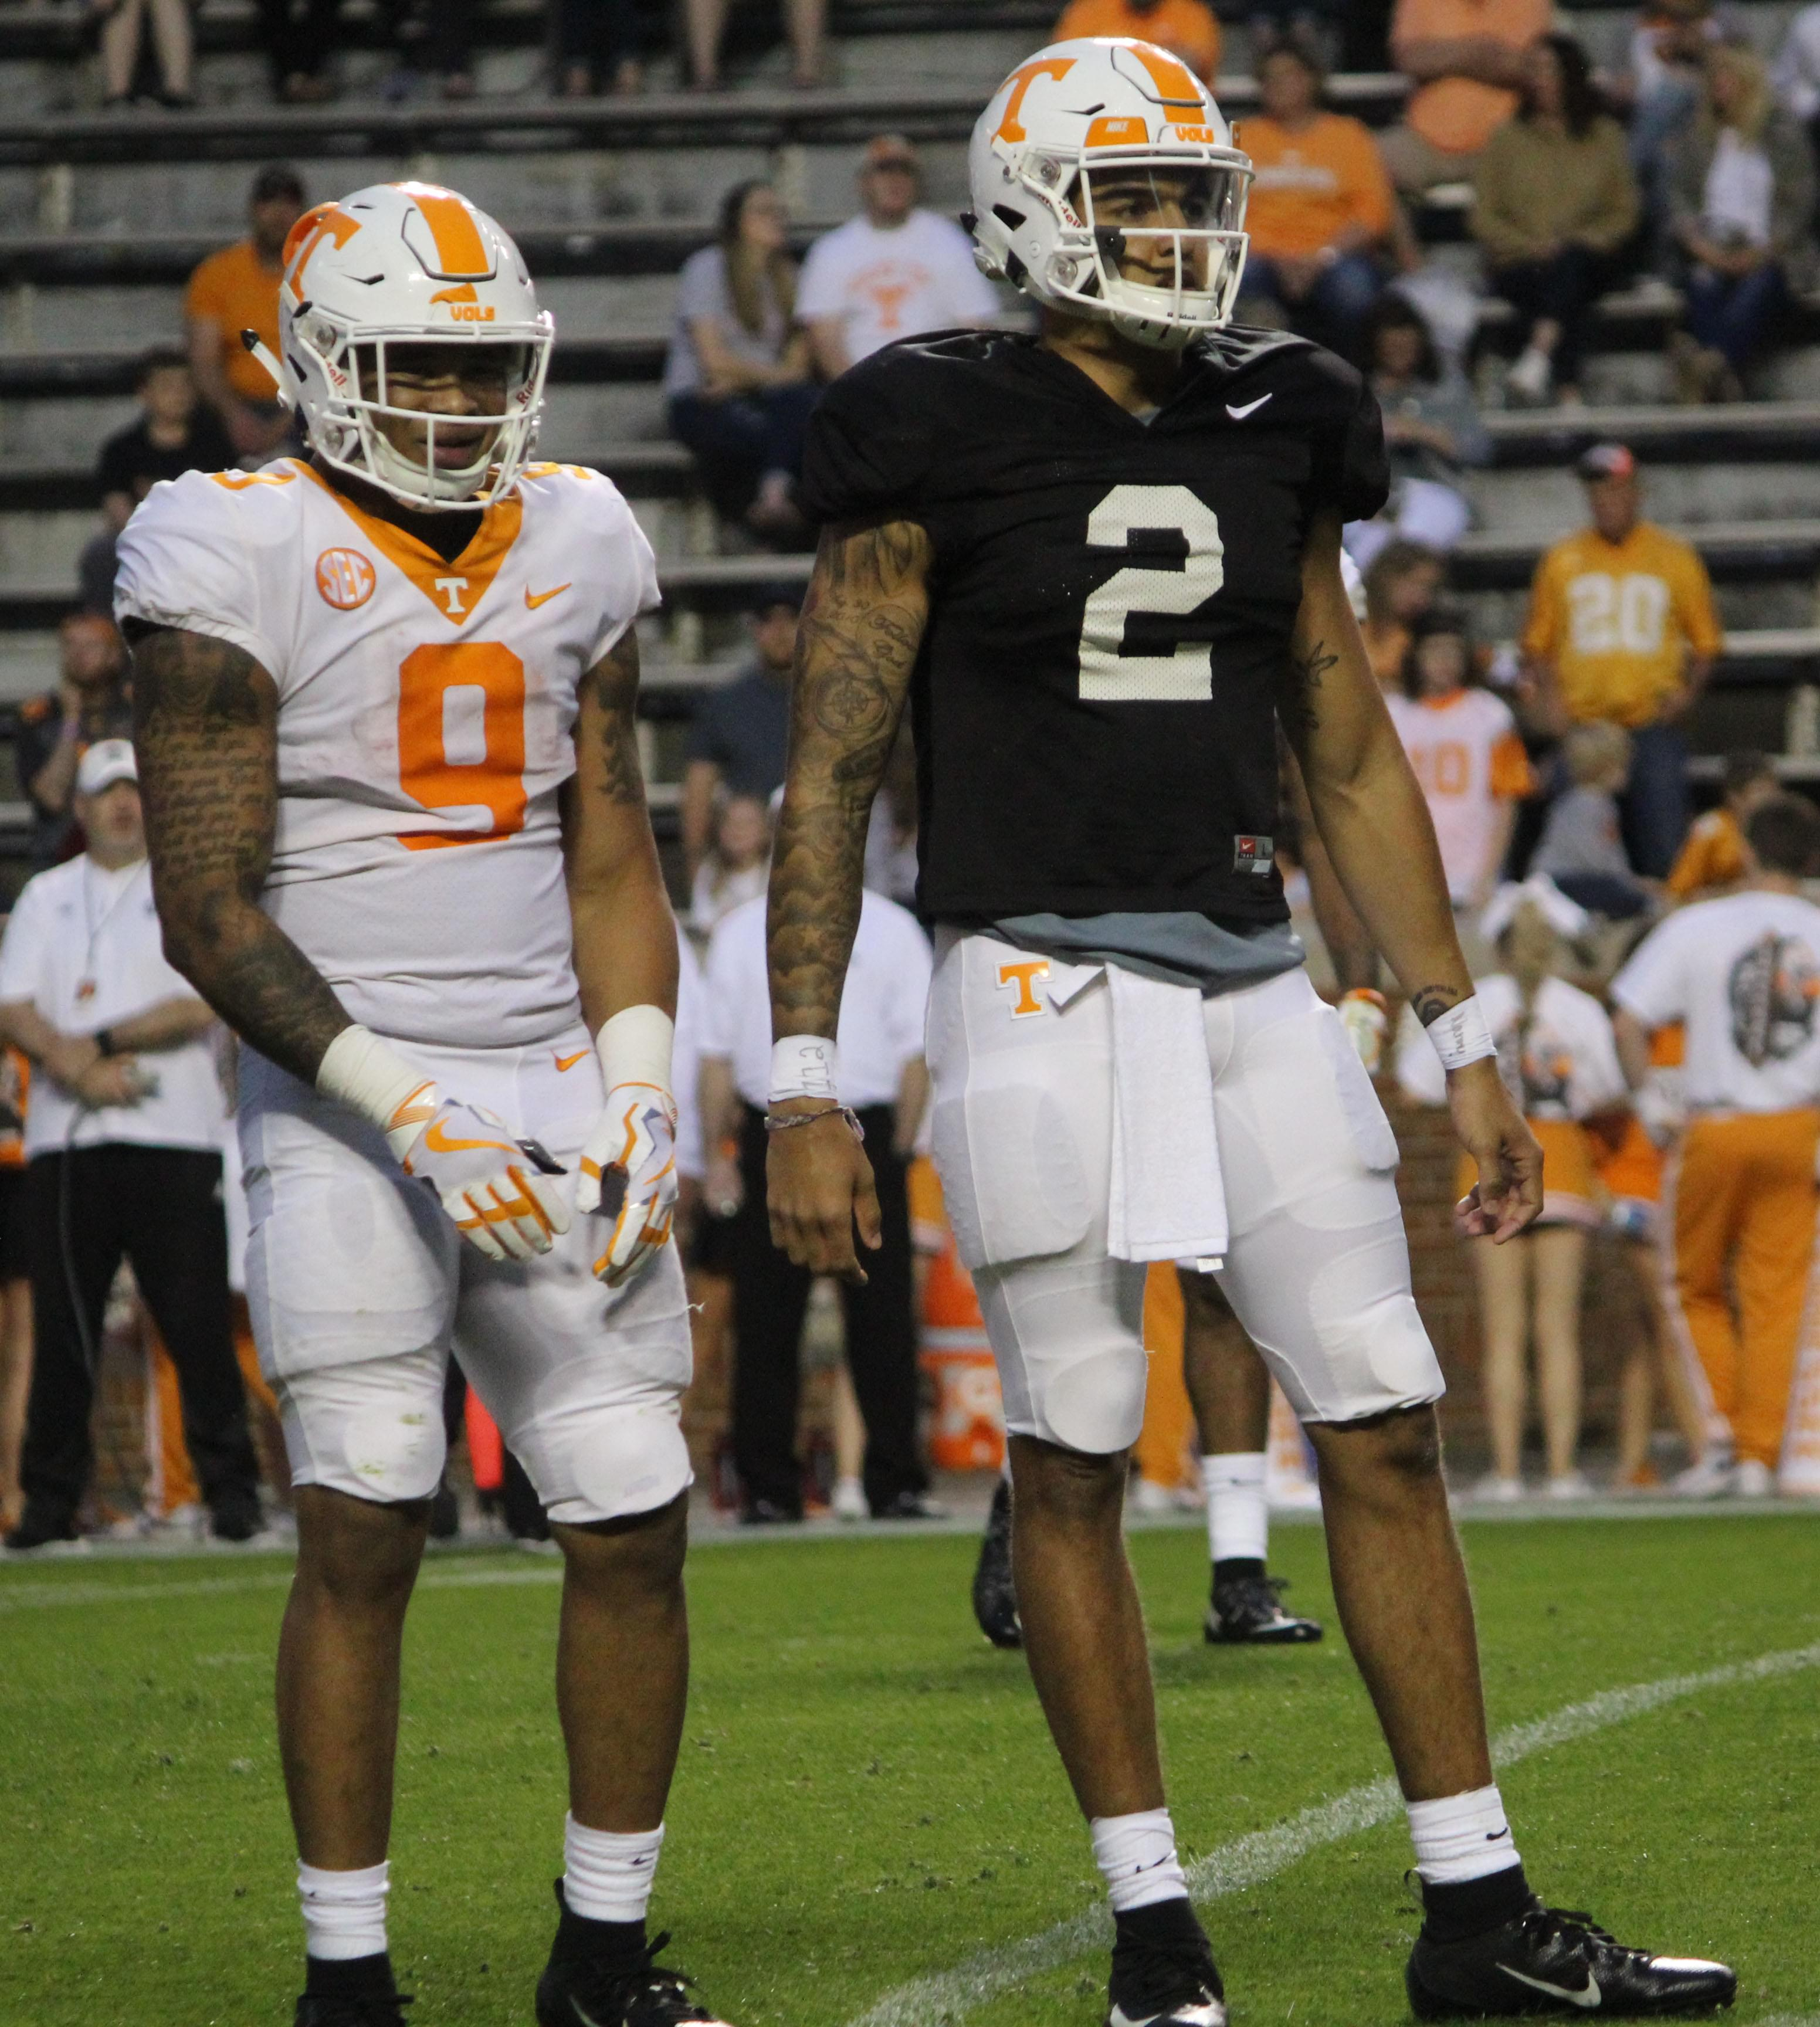 Cainer's Corner: Vols Early Camp Update